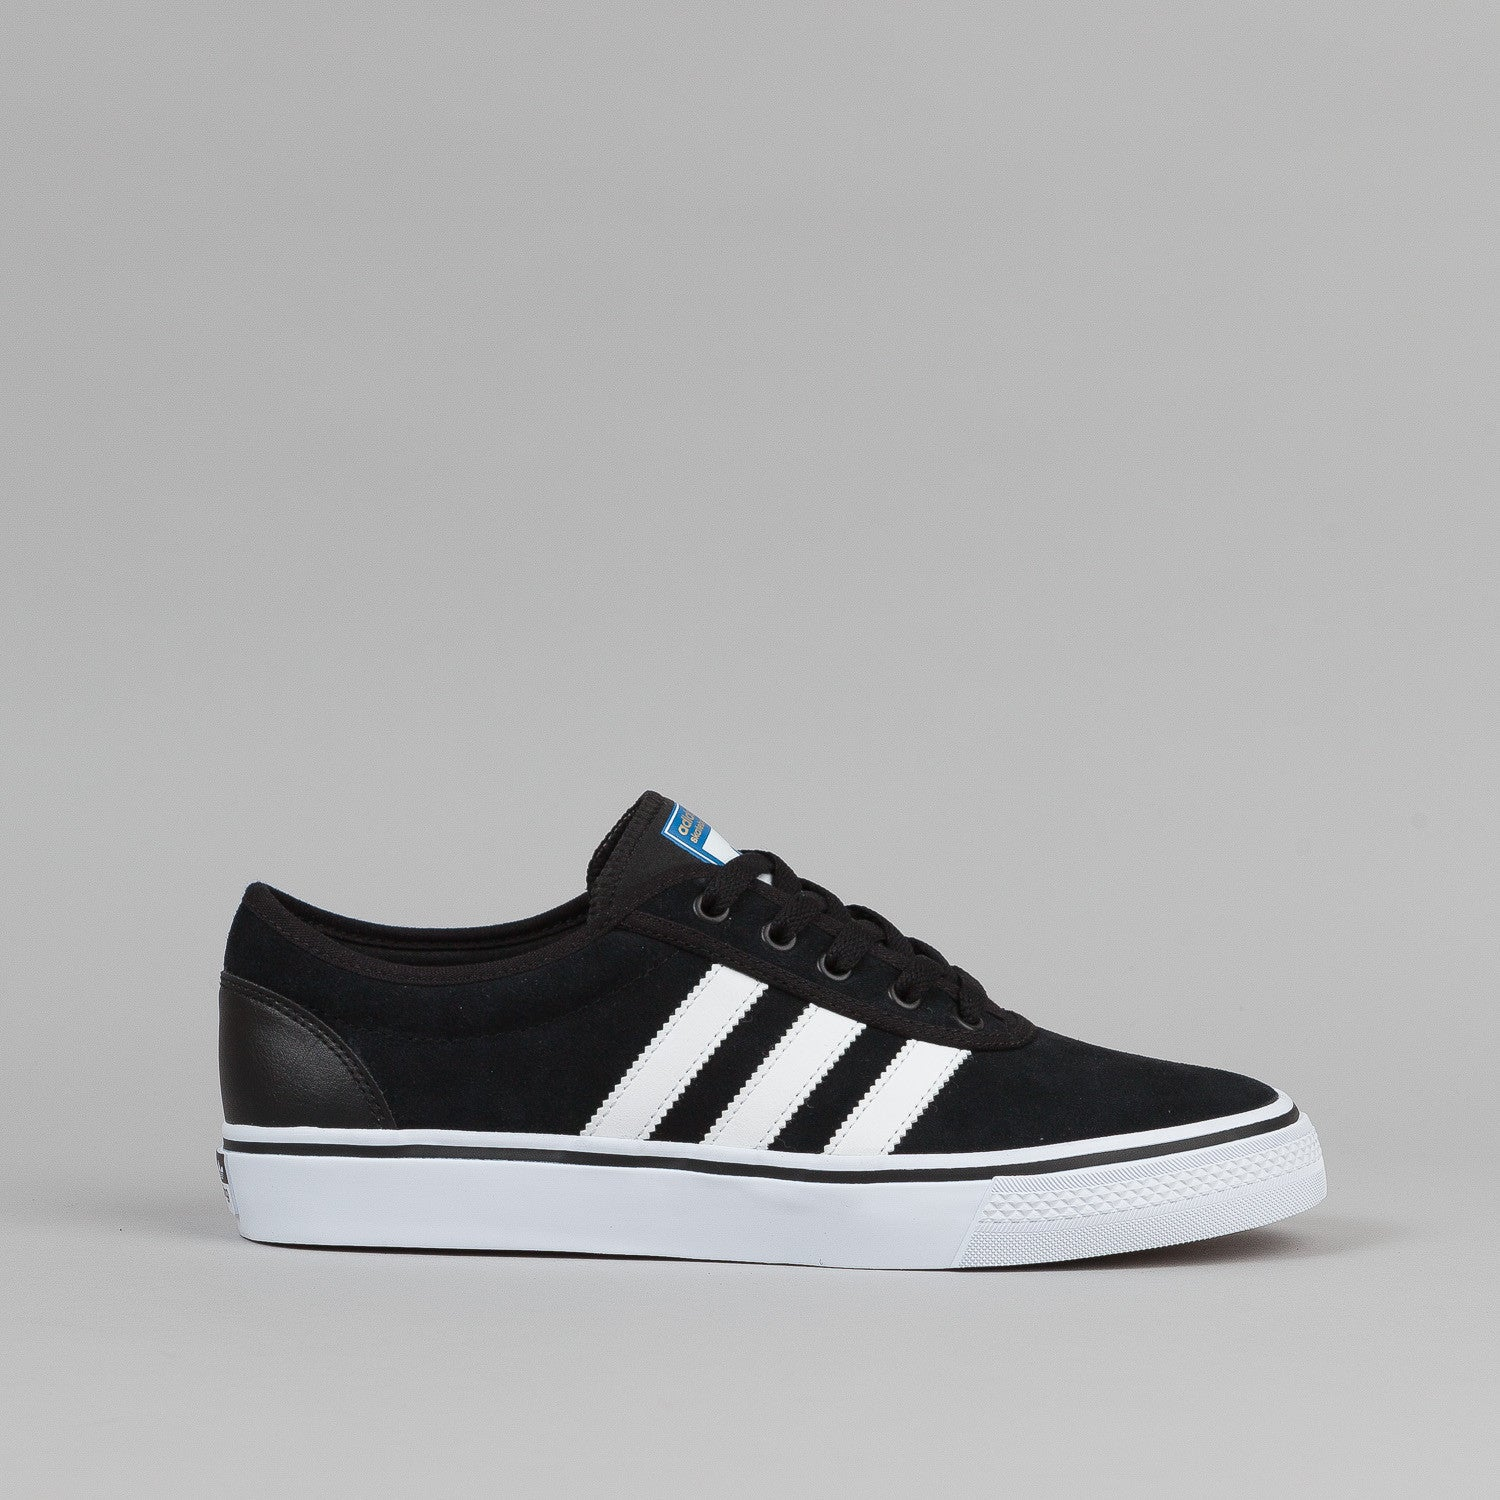 Adidas Adi-Ease Adv Shoes